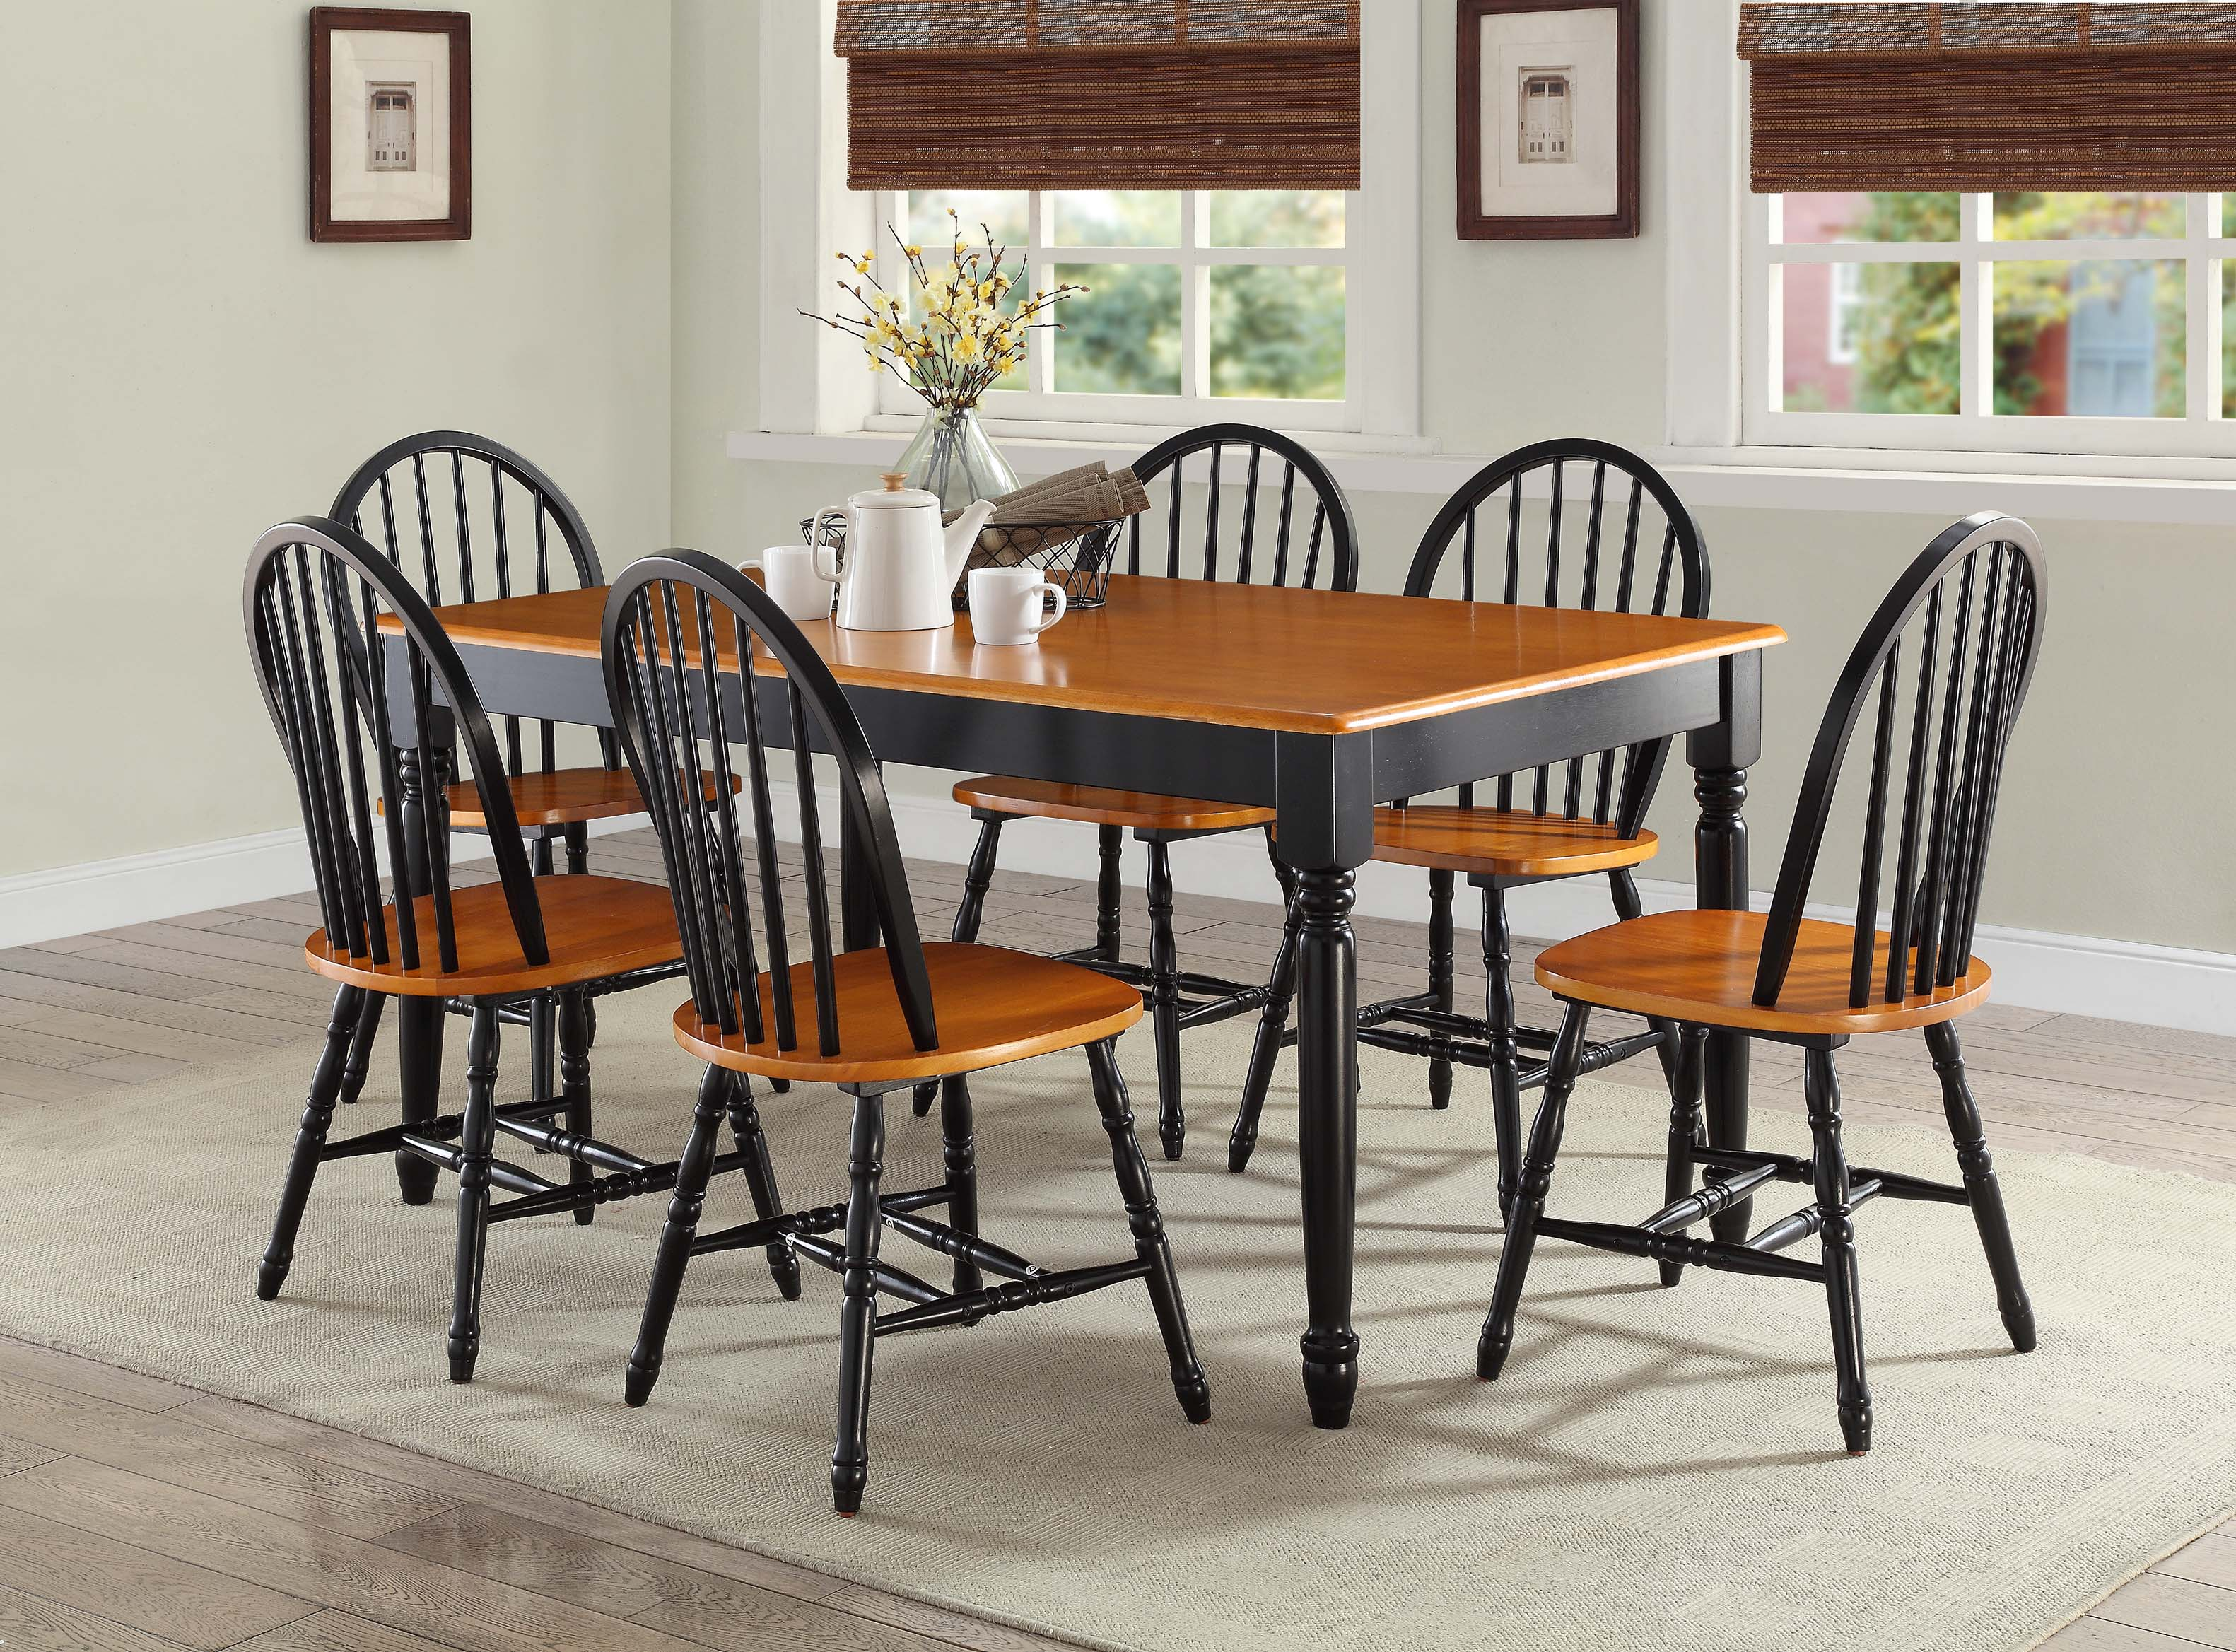 Better Homes and Gardens Autumn Lane Farmhouse Dining Table Black and Oak  eBay